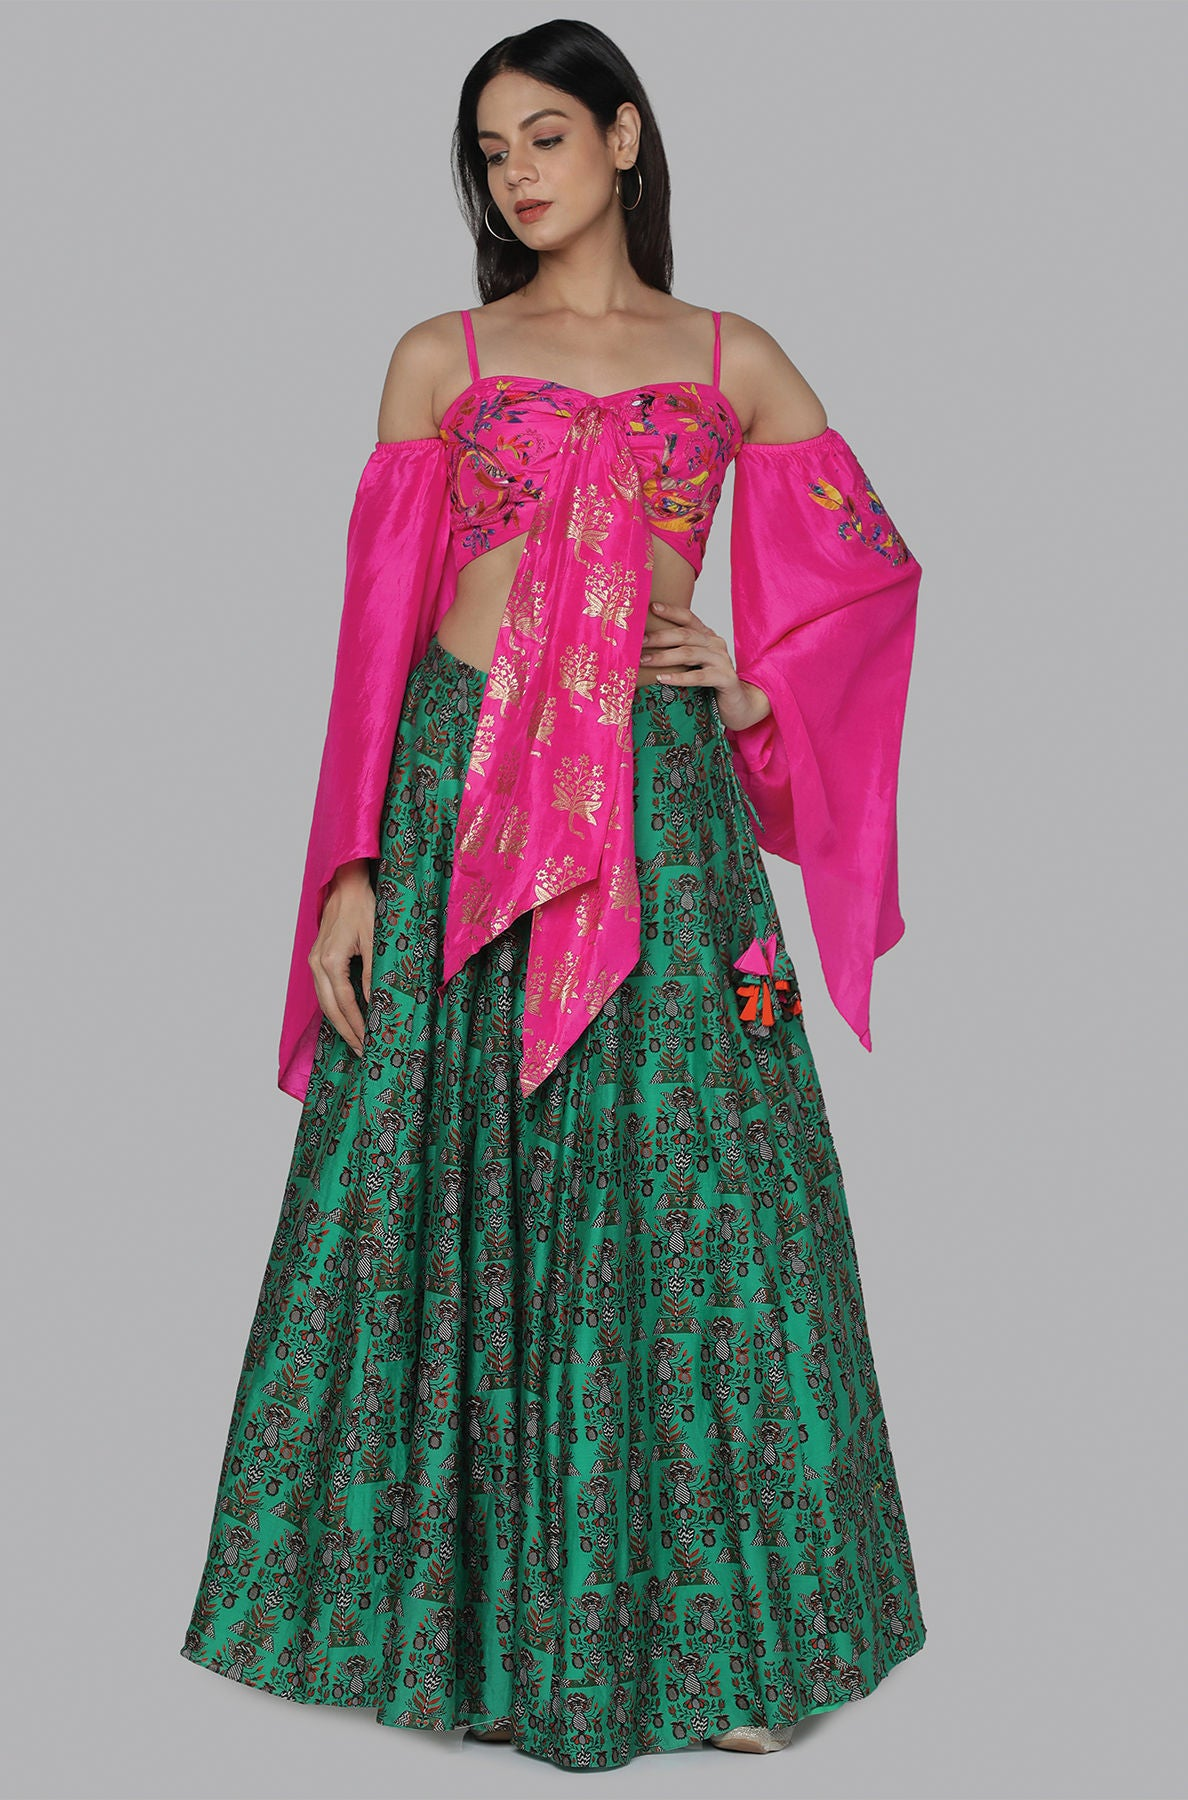 PINK EMB. BLOUSE WITH GREEN FLOWER GARDEN LEHENGA - The Grand Trunk